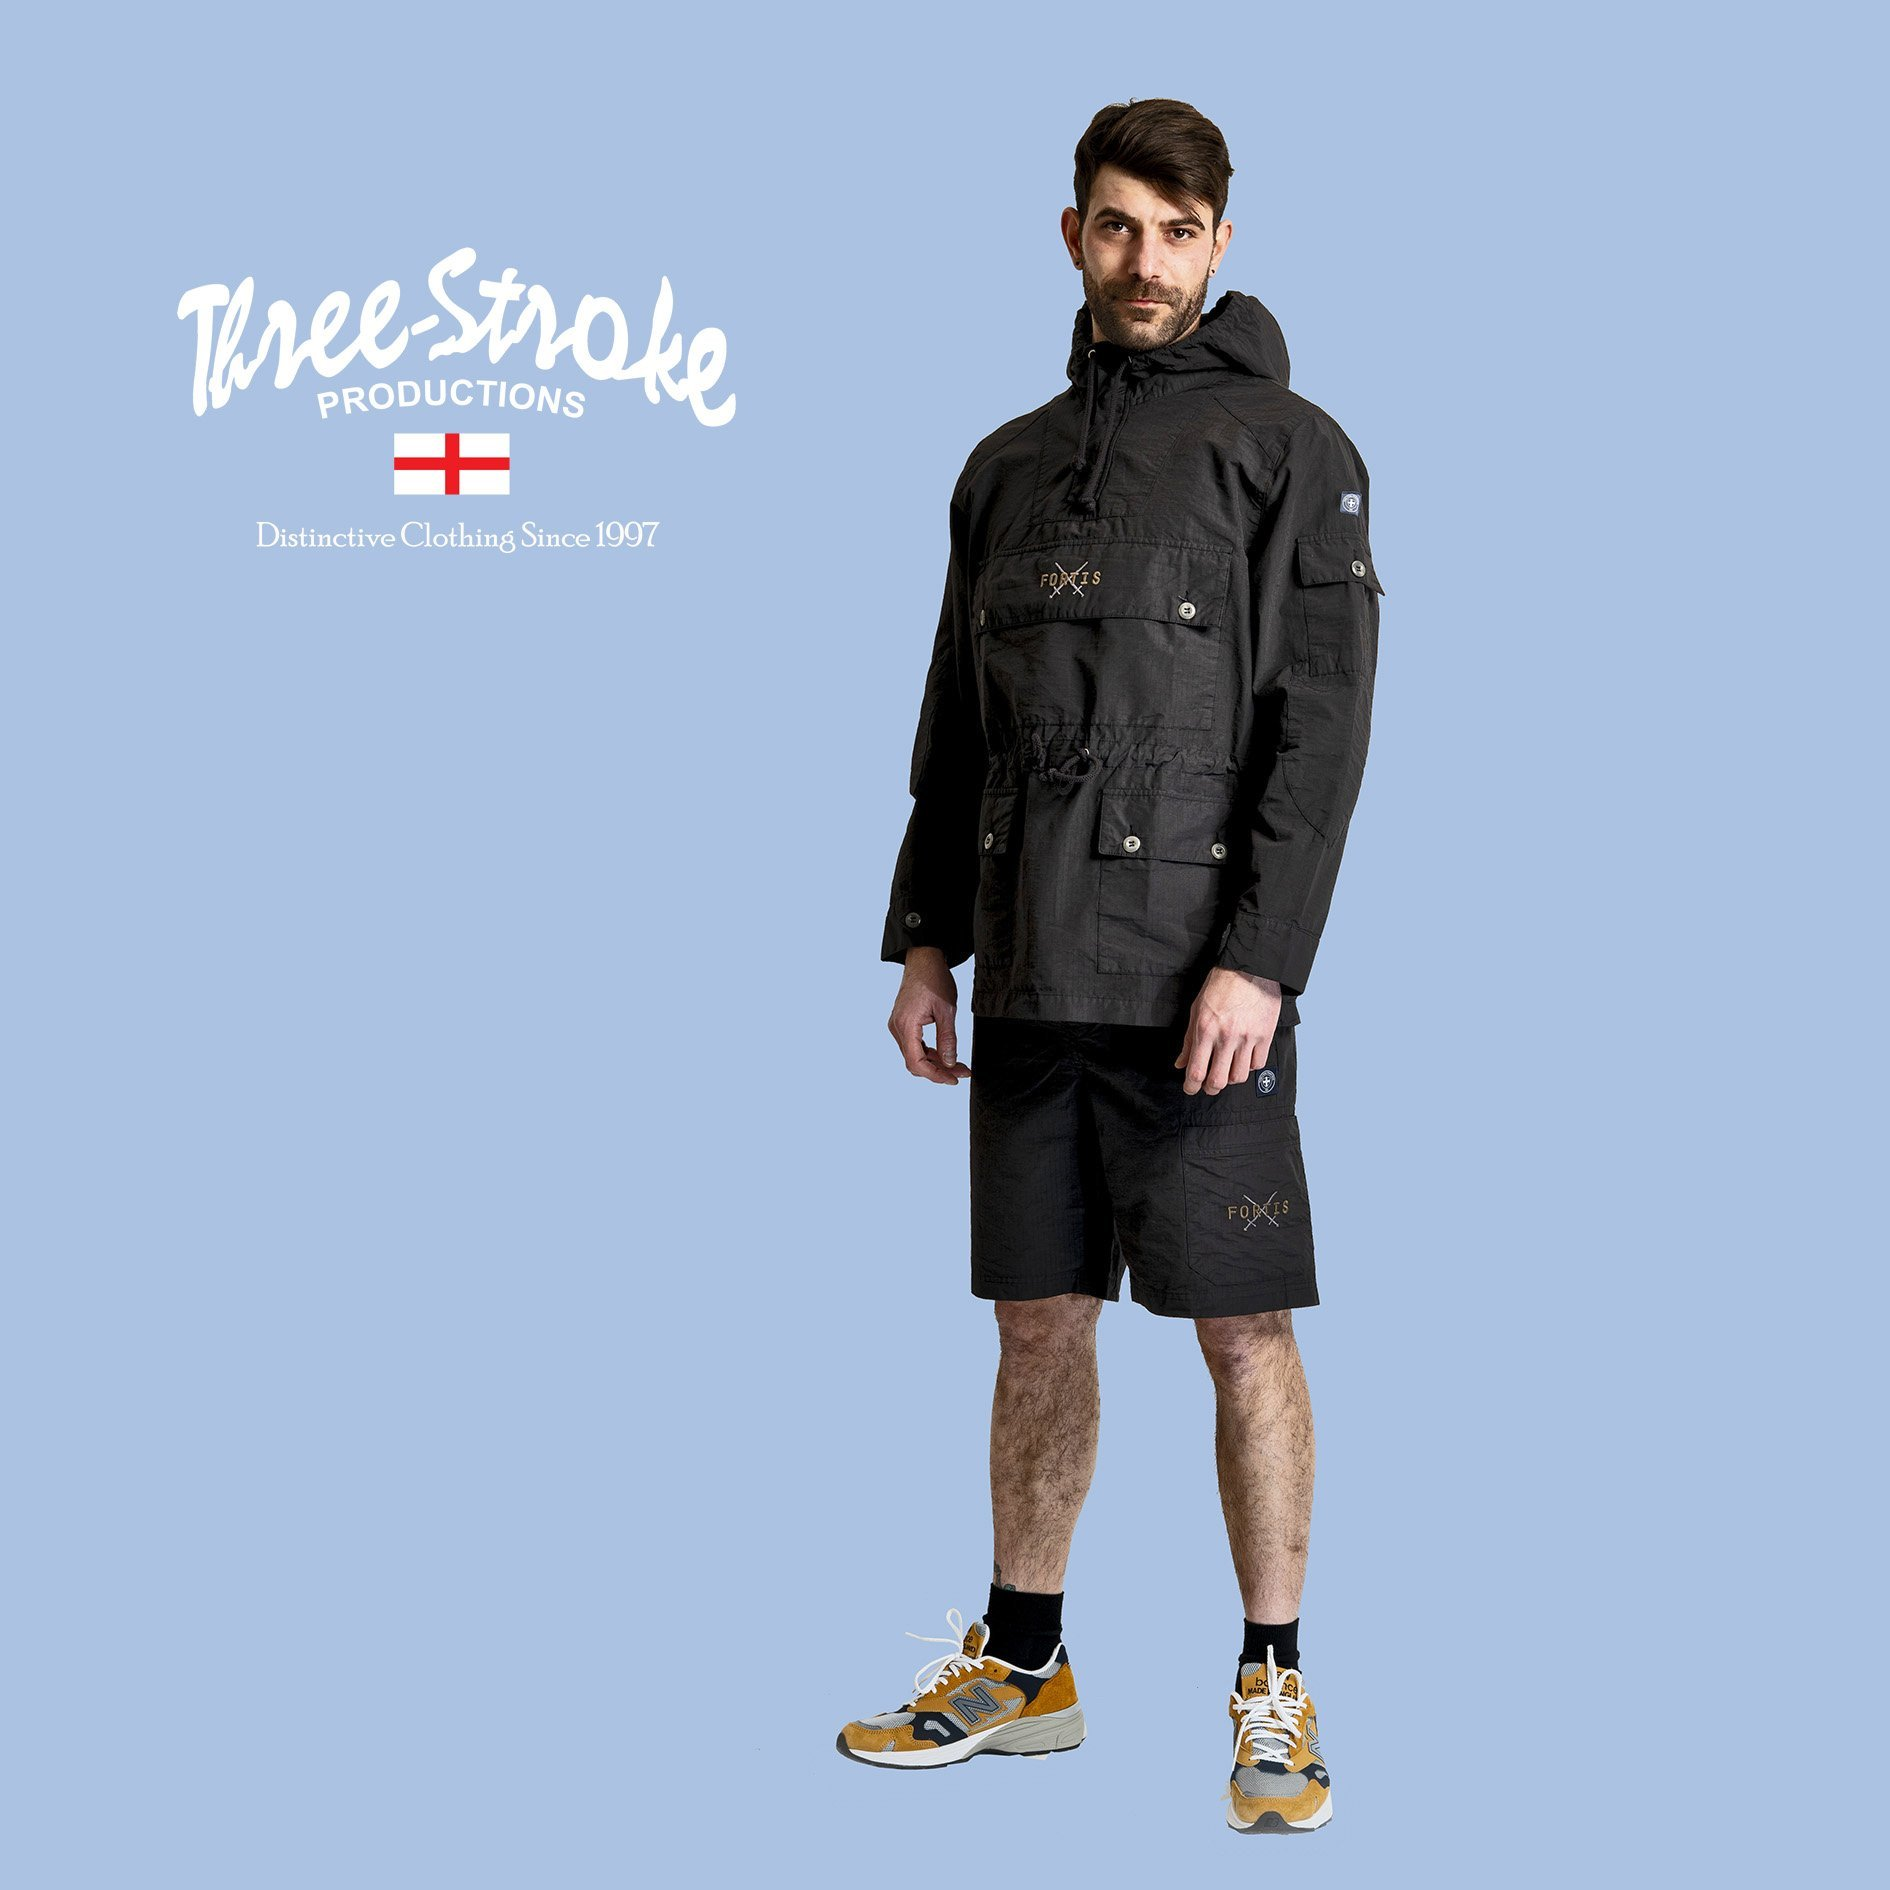 armor jacket and explorer ripstop shorts by Fortis London